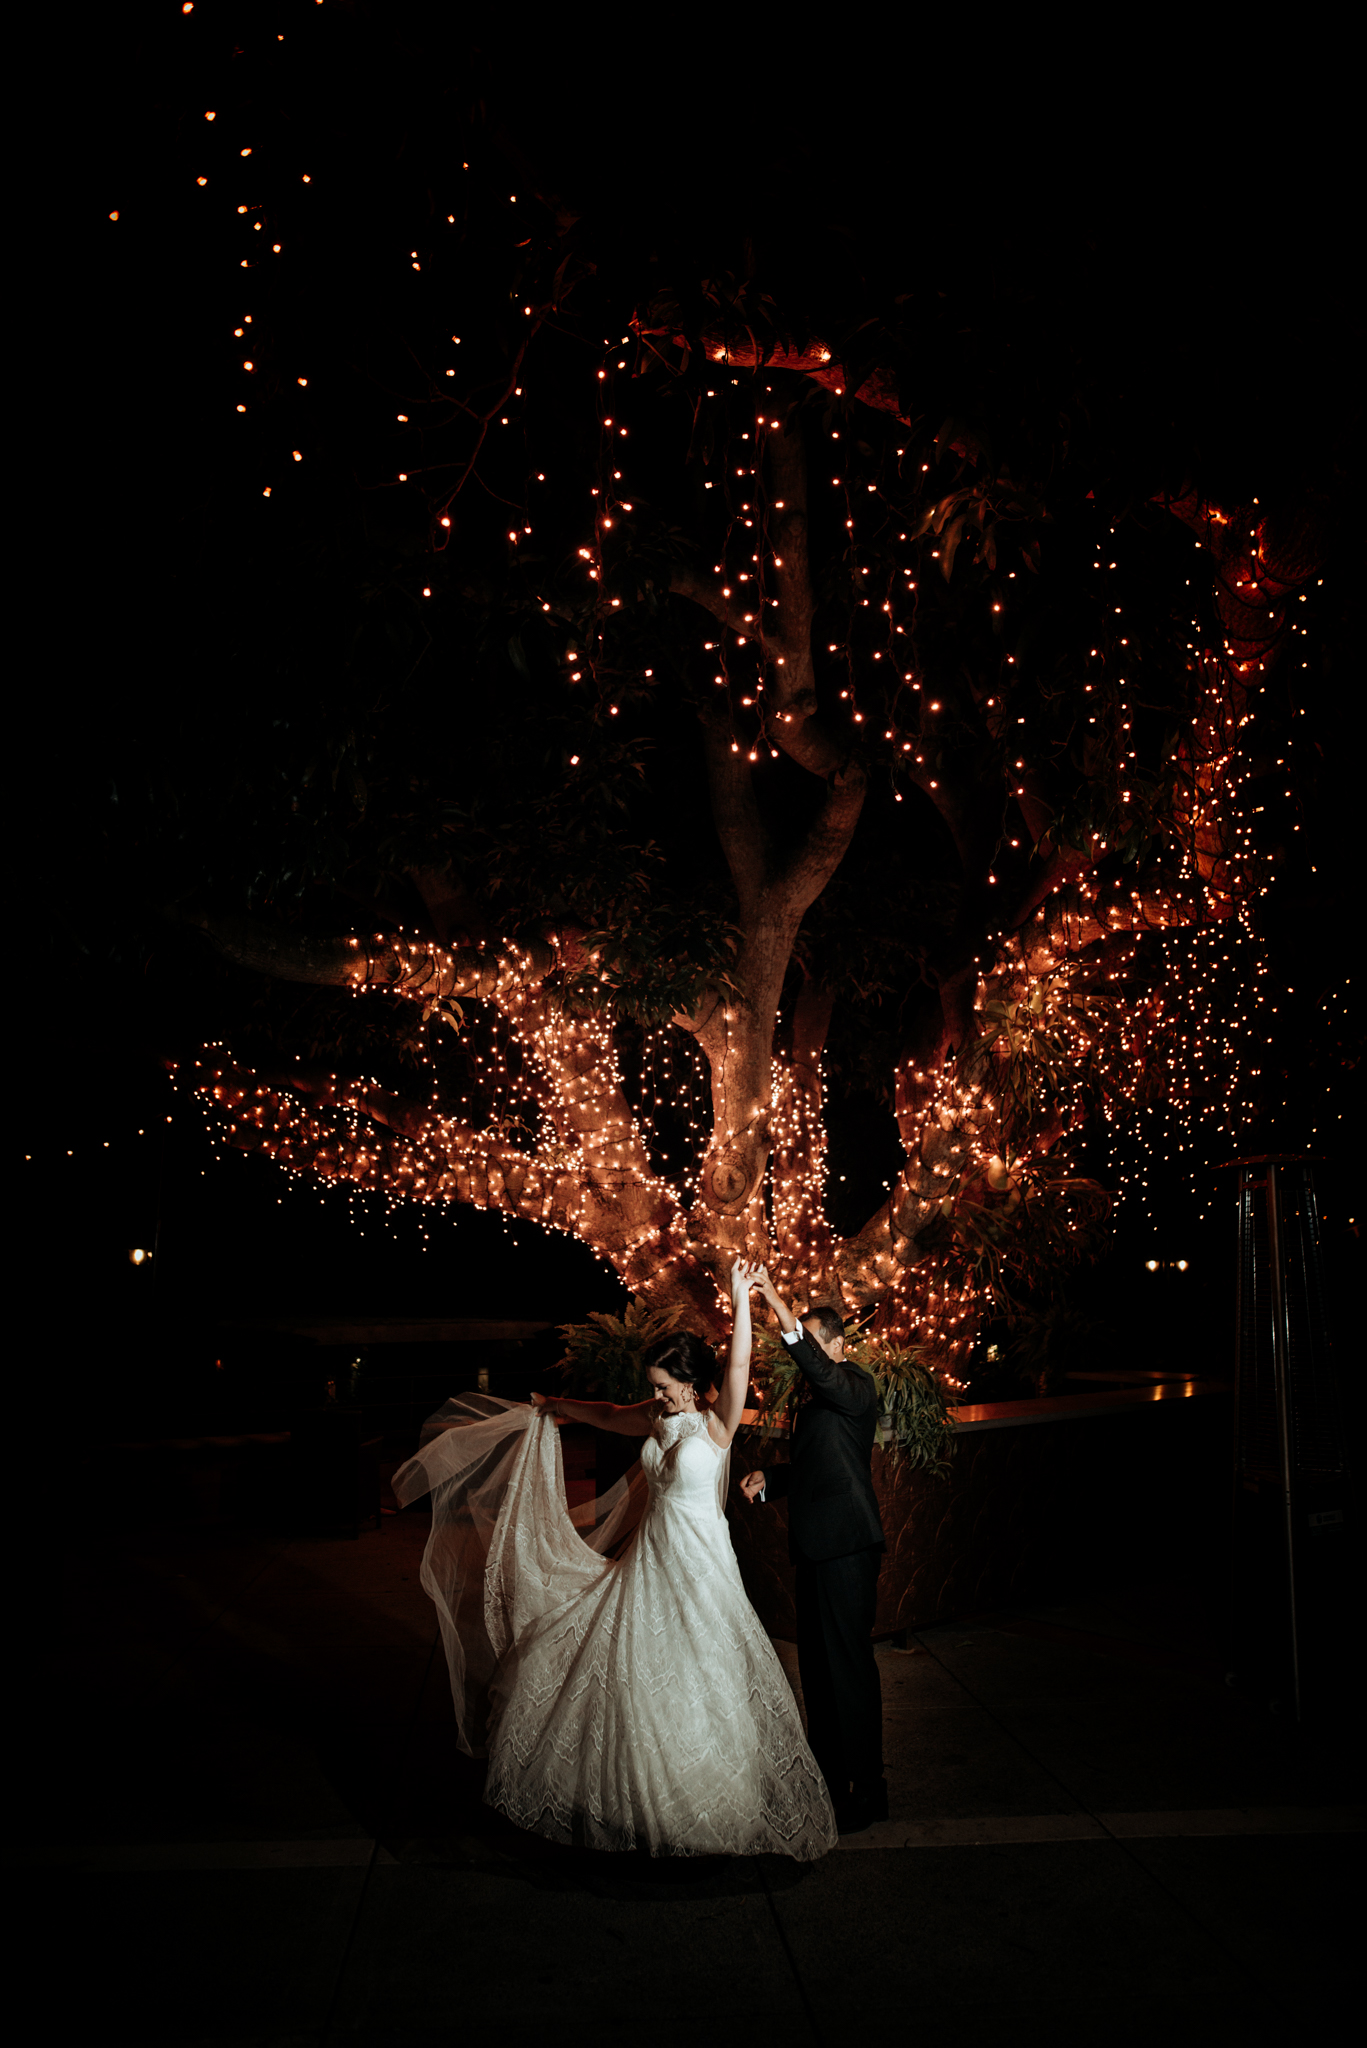 LOVELENSCAPES PHOTOGRAPHY • VISUAL POETRY • BRISBANE WEDDING PHOTOGRAPHER • HILLSTONE ST LUCIA • SRI LANKAN WEDDING • 396.jpg